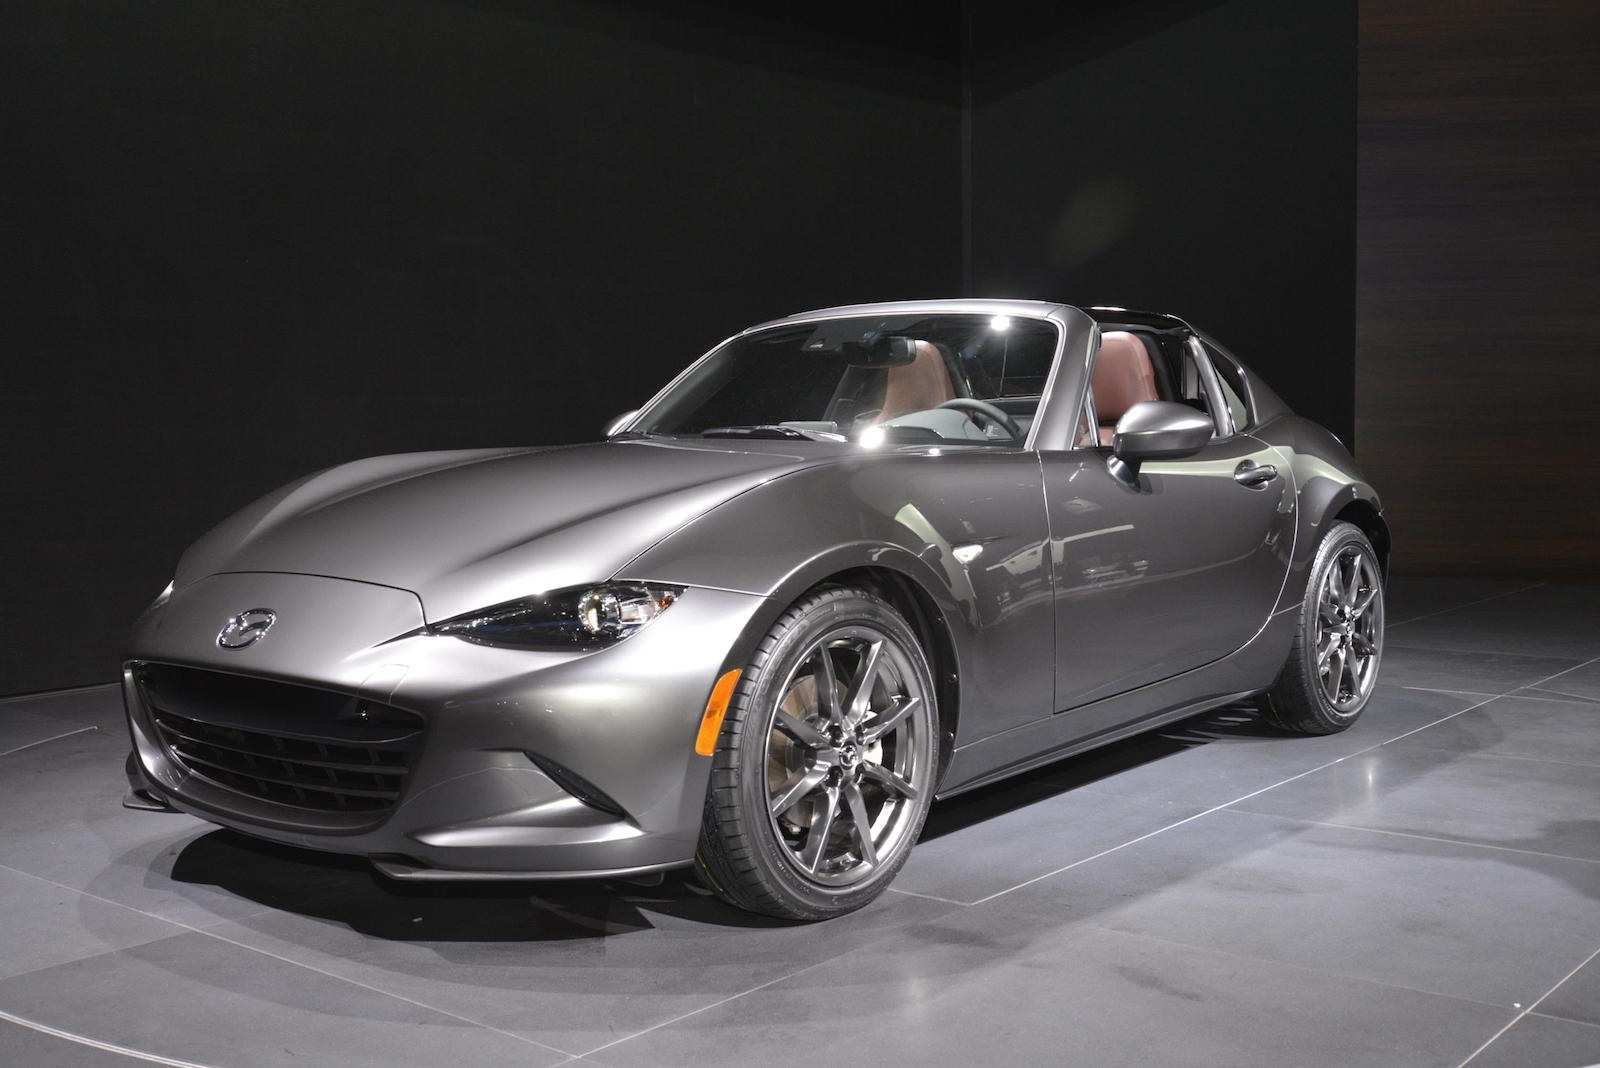 99 Best Review Mazda Nd 2019 Spy Shoot Price with Mazda Nd 2019 Spy Shoot